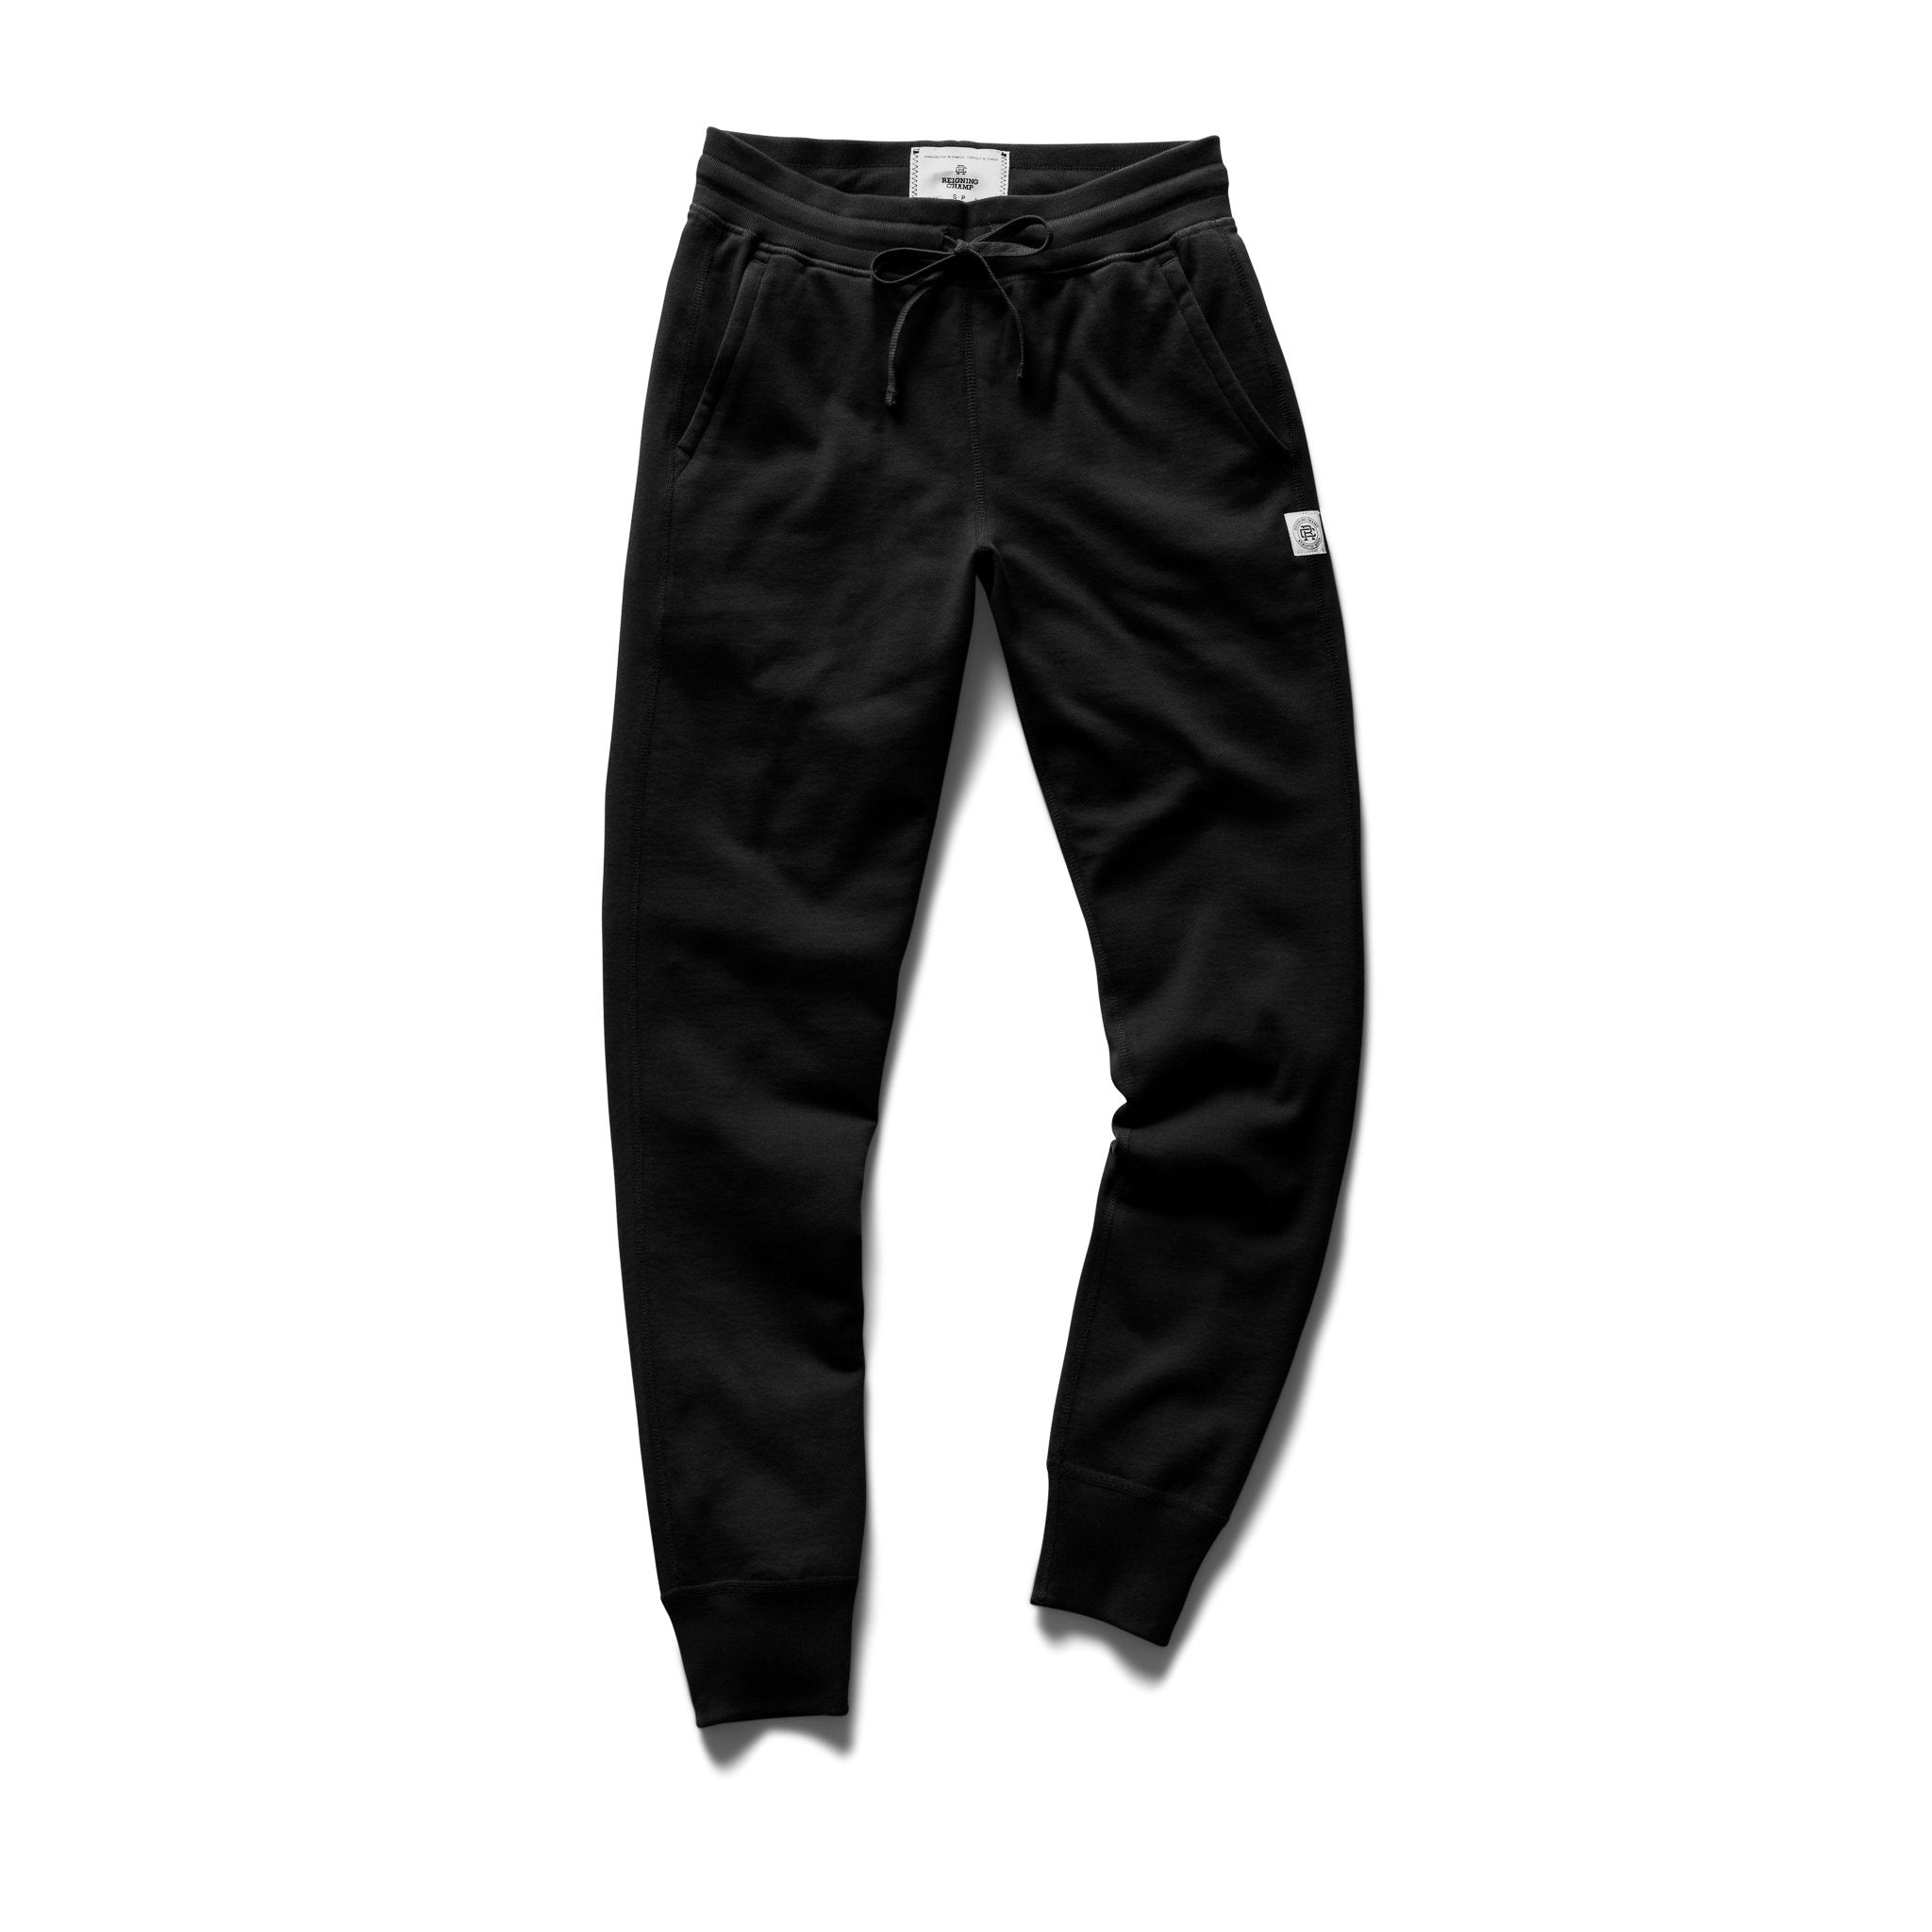 REIGNING CHAMP W'S PANTS BLACK XS SLIM SWEATPANT